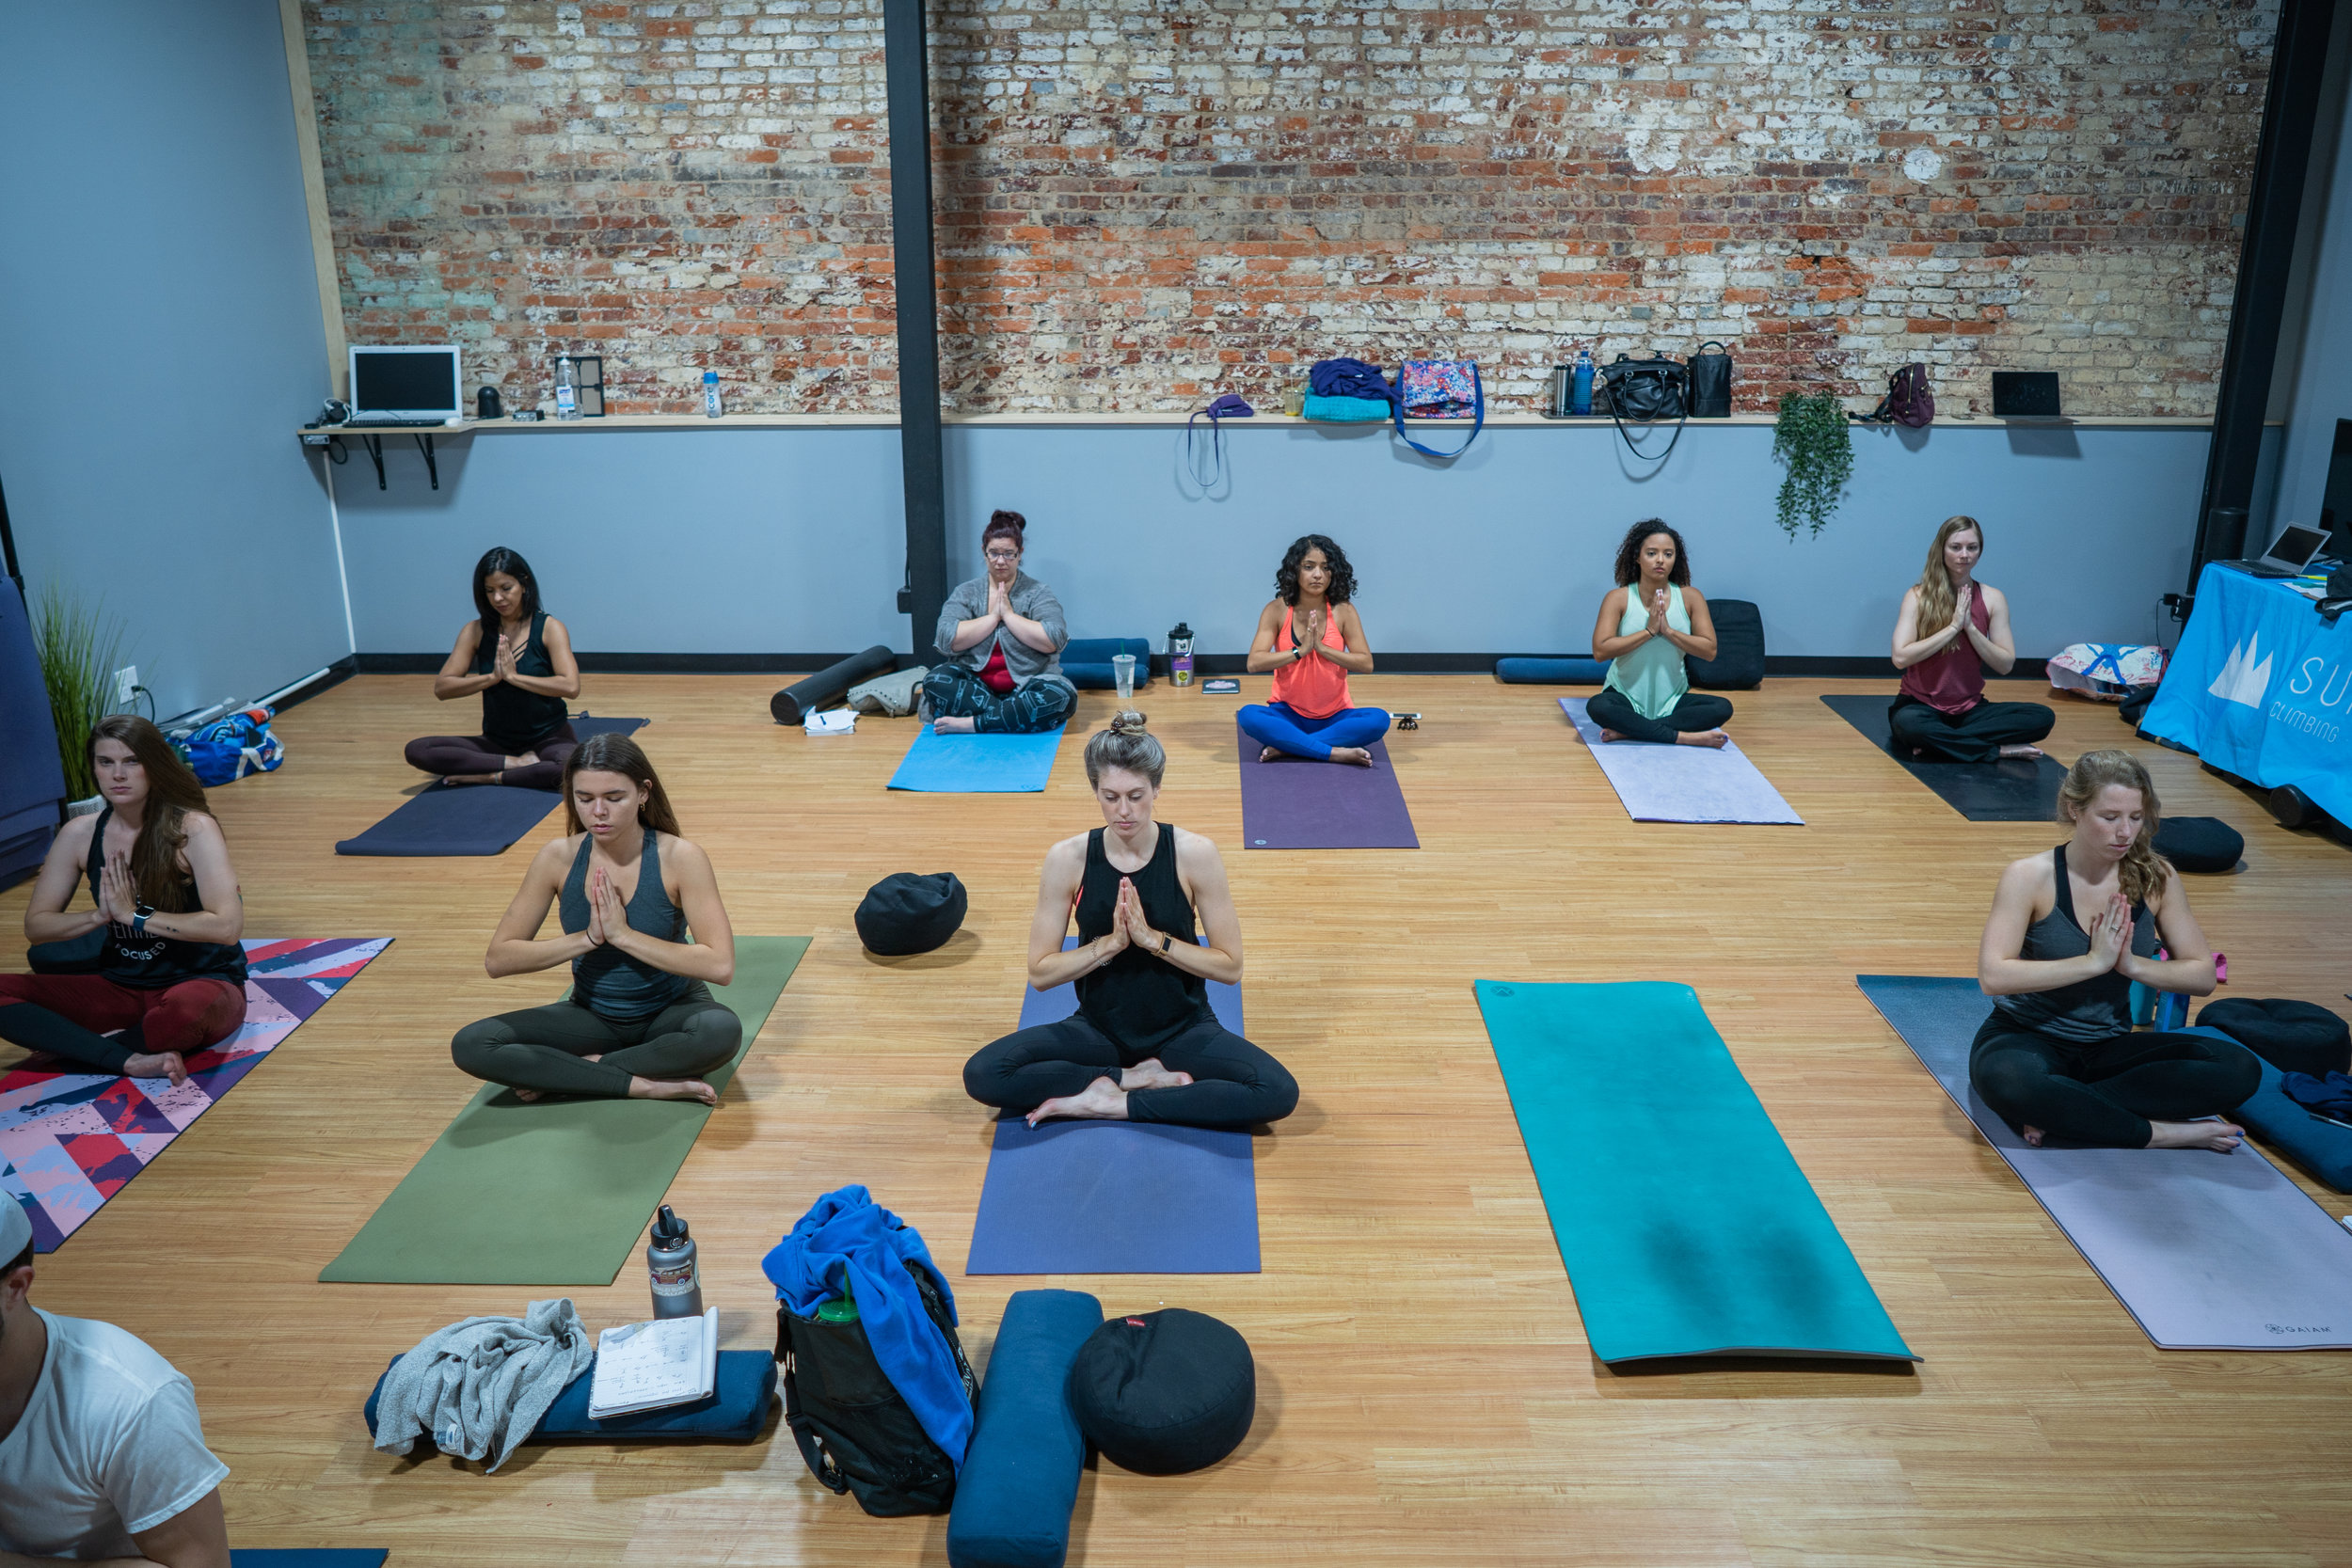 Summit Yoga School   Our 200 hour accredited teacher training program will help you do that. Next course starts January 11th at Summit Dallas!   More info